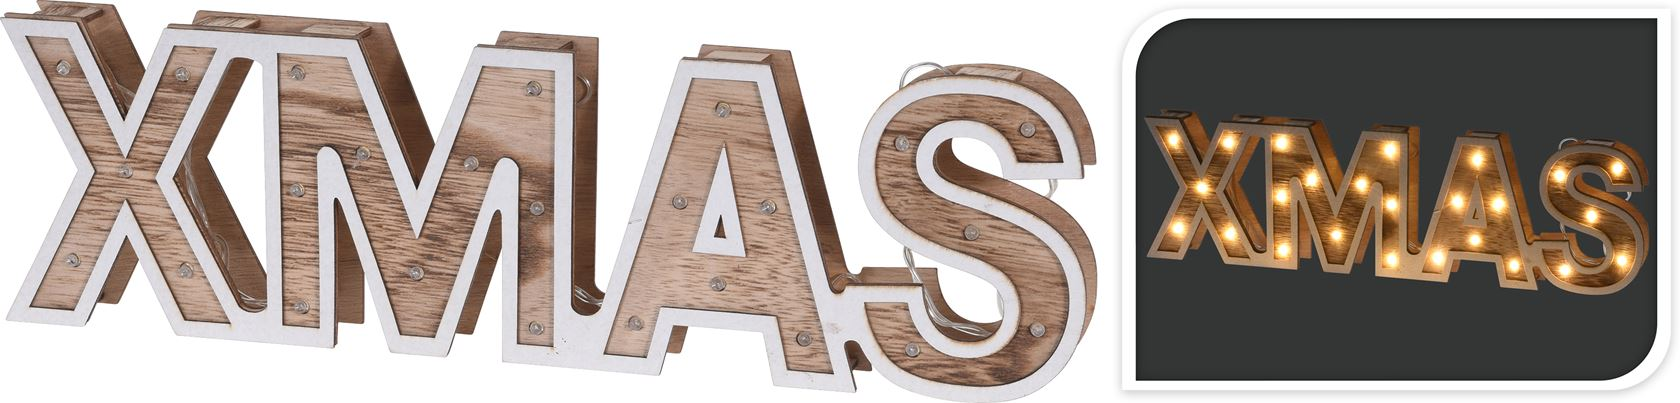 letters hout led